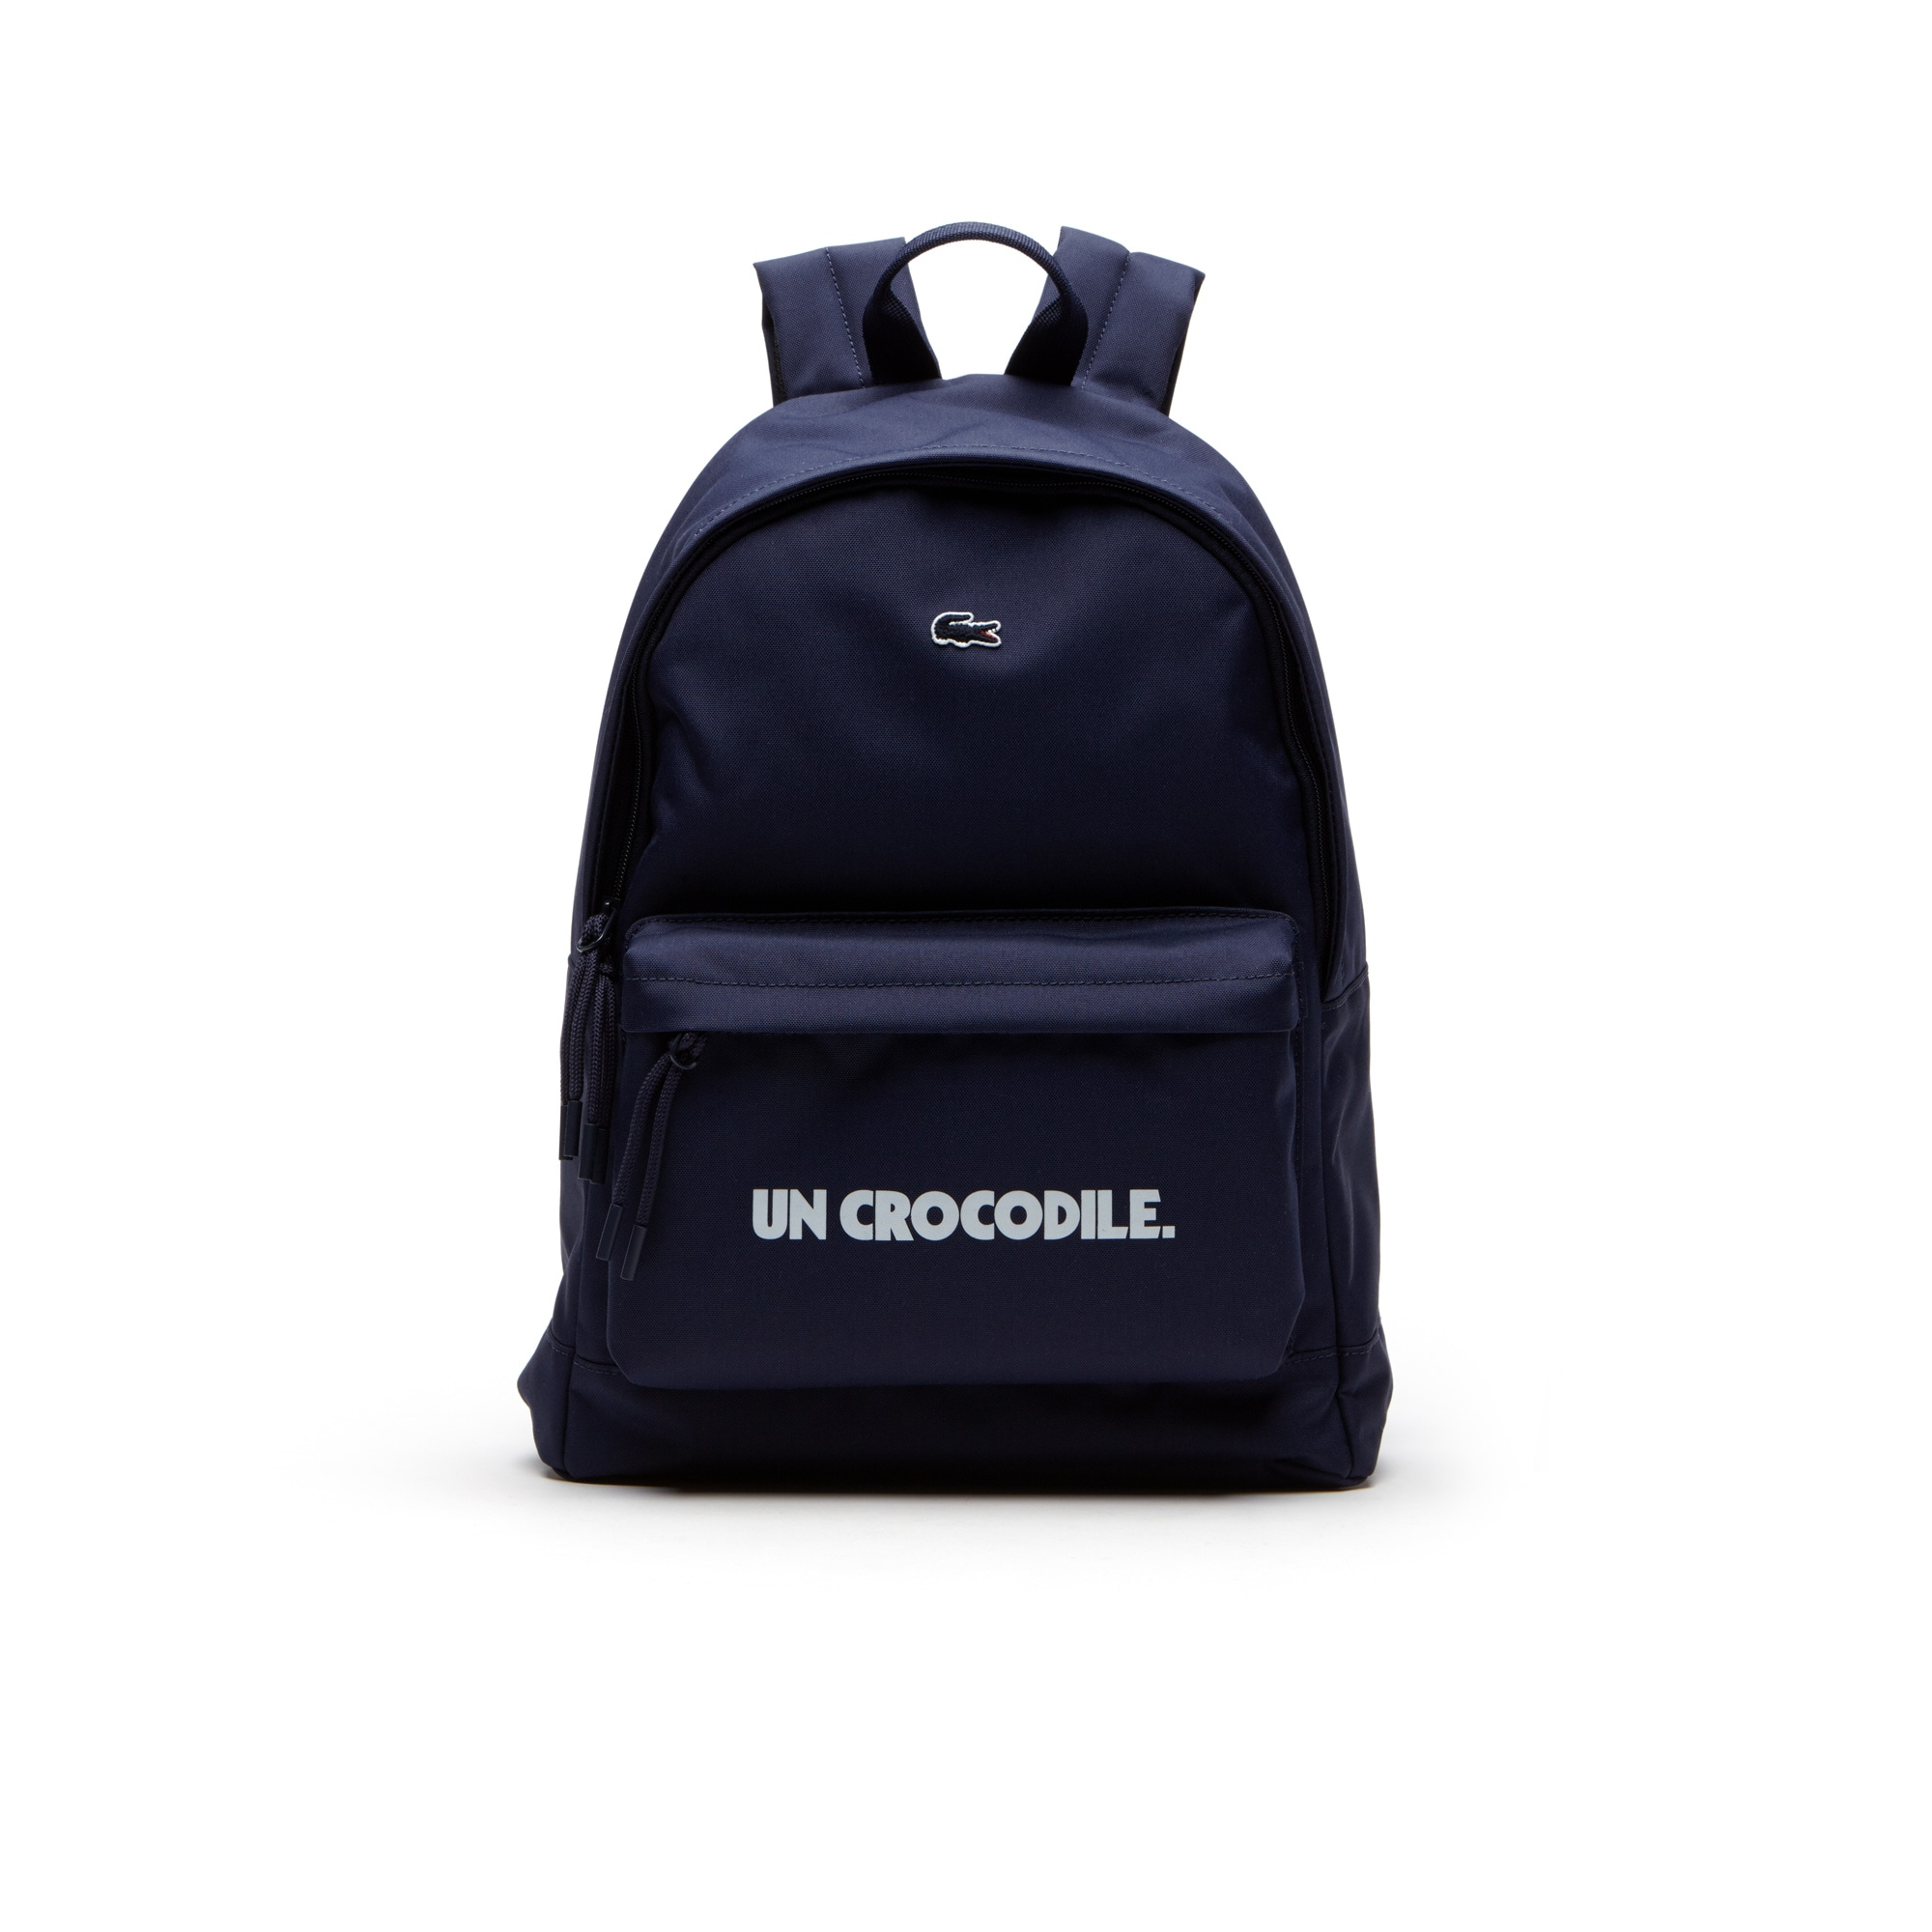 Men's Neocroc Un Crocodile Lettering Monochrome Backpack